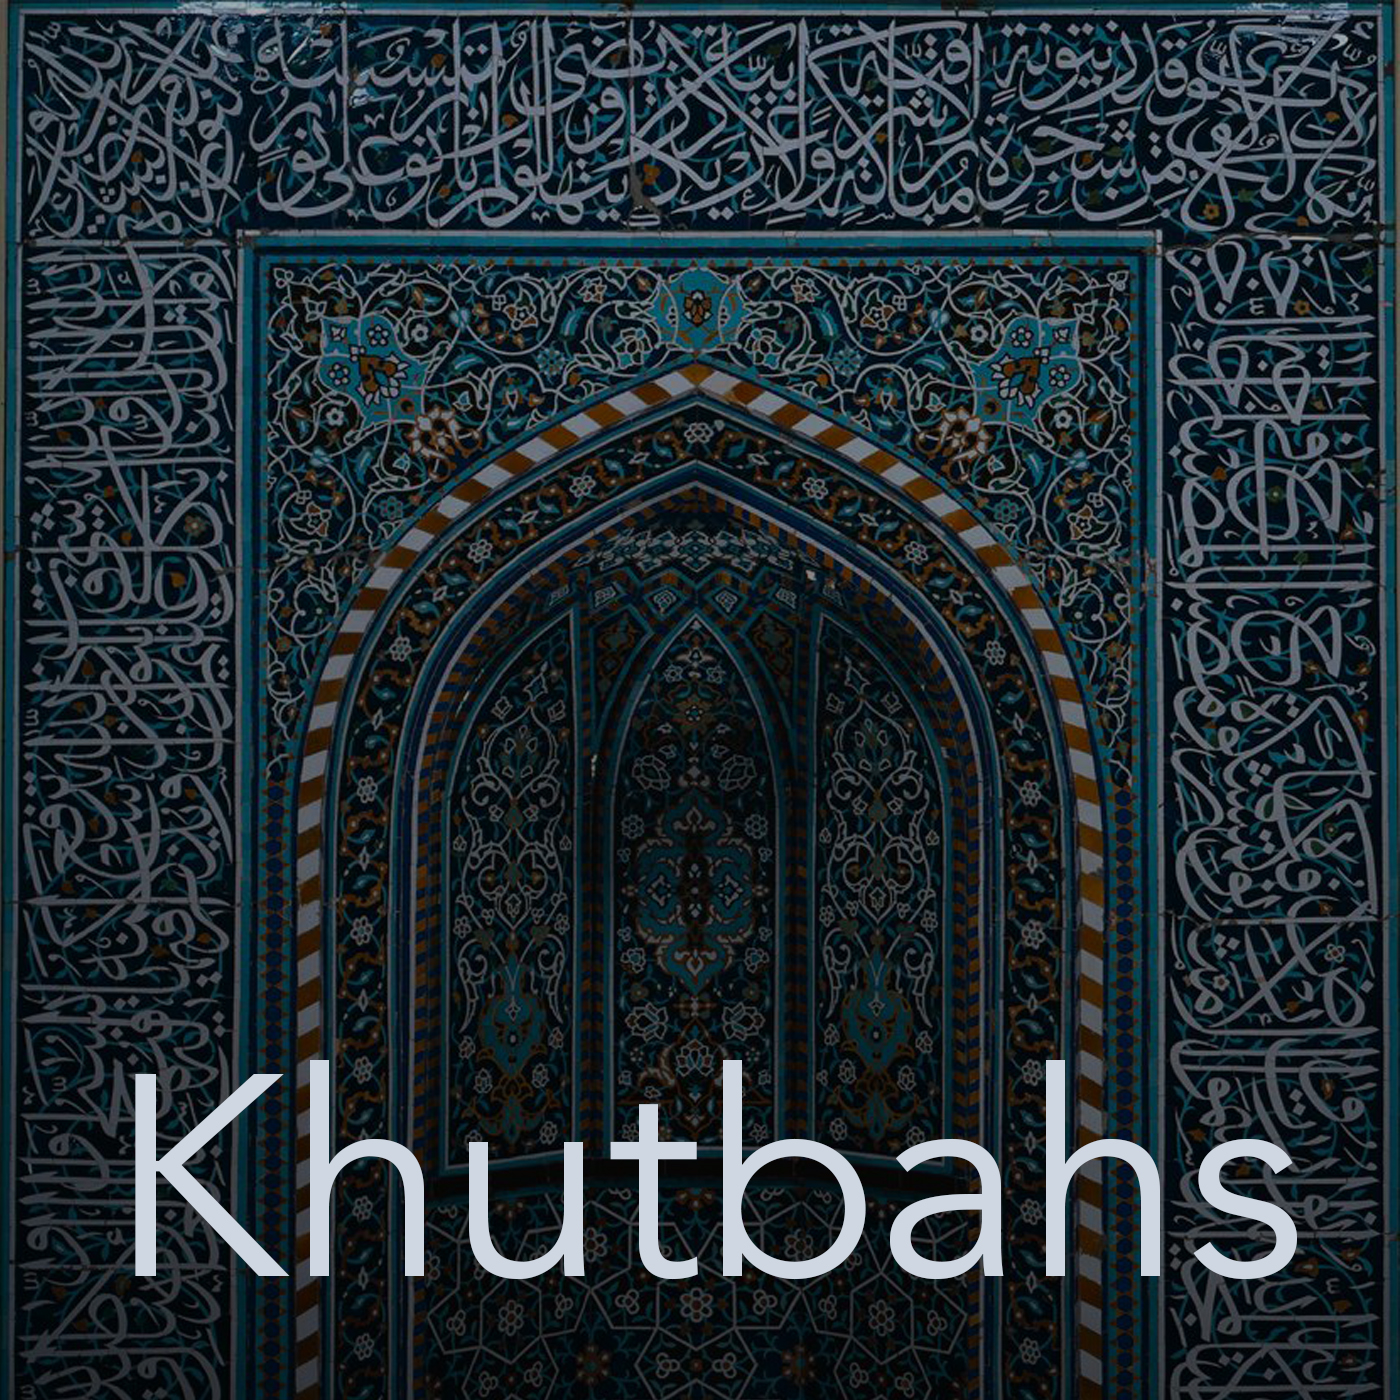 Eid Khutbah – Celebrating Faith and Family